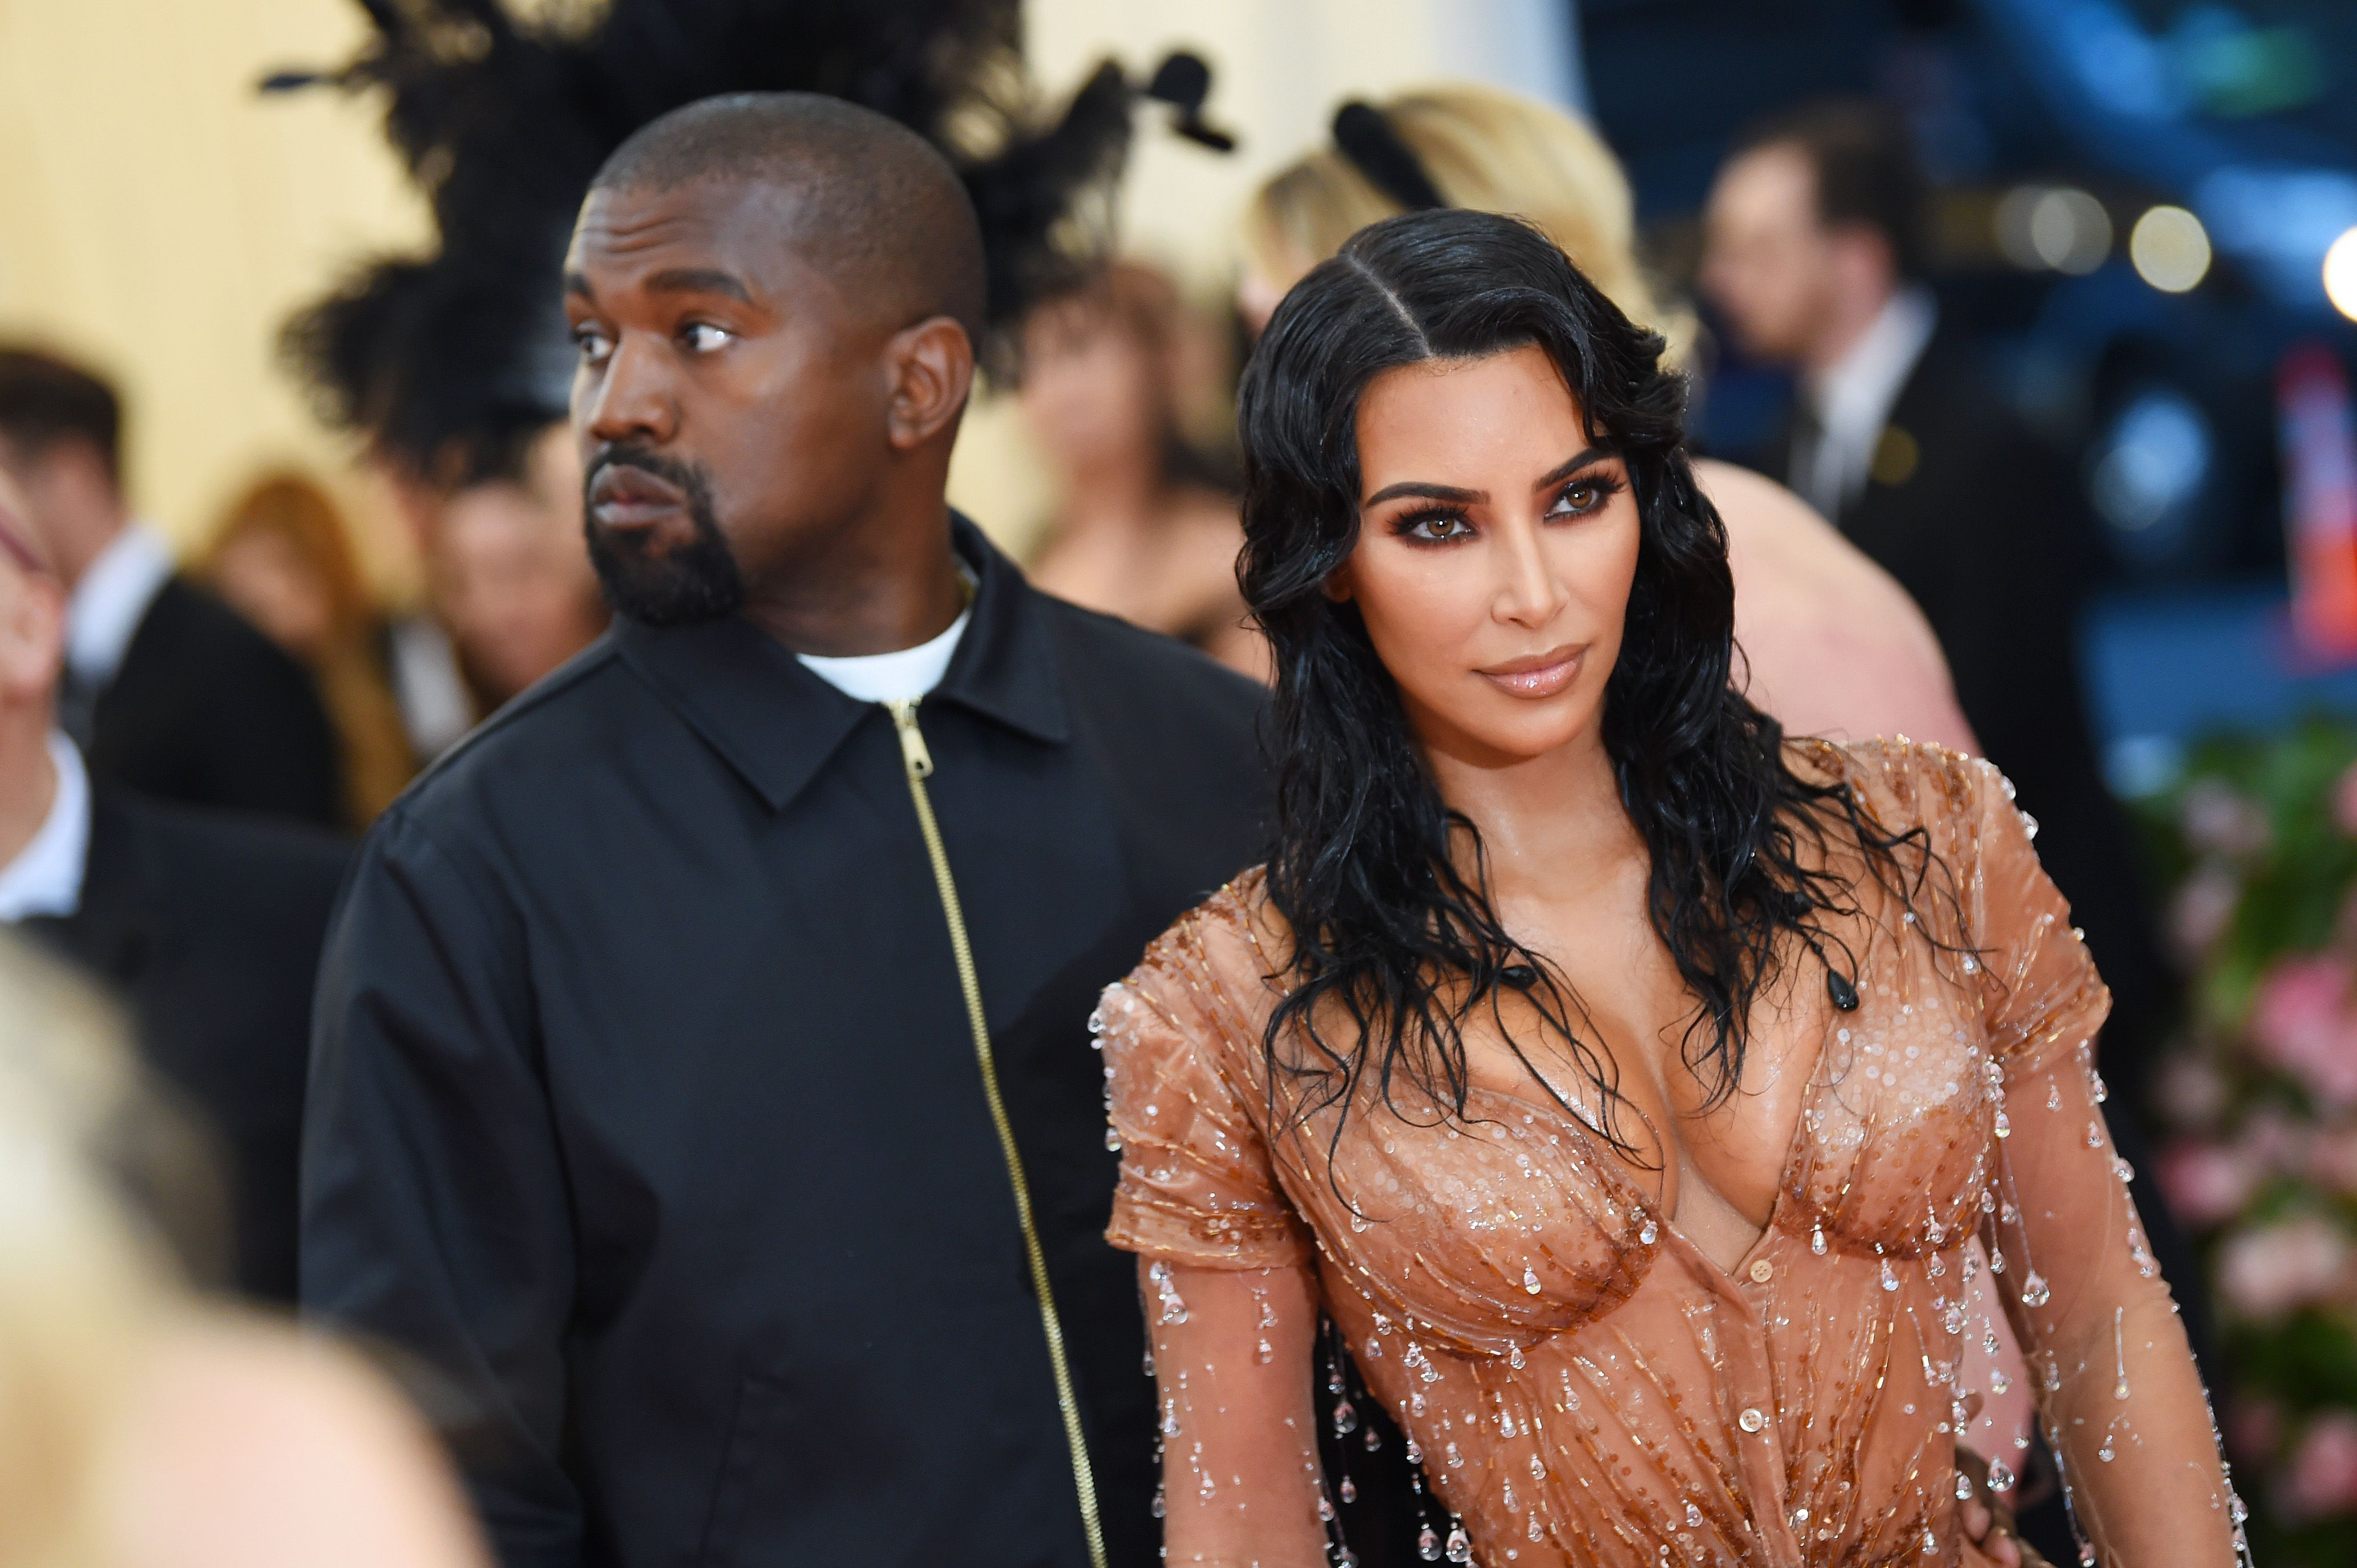 Twitter Is Going Wild Over Kim Kardashian and Kanye West Naming Their Baby Boy Psalm